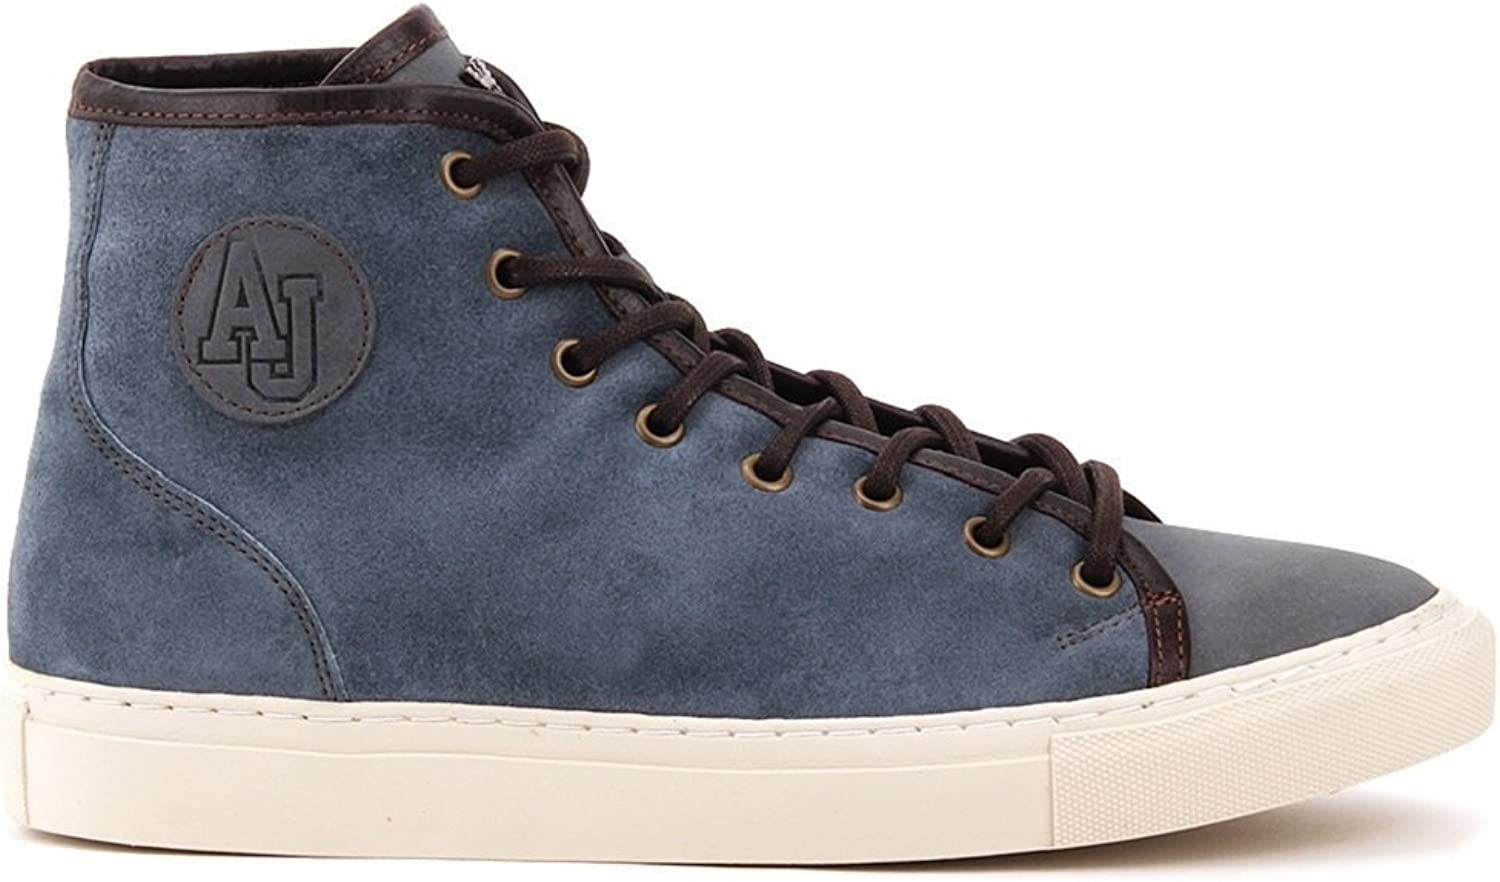 ARMANI JEANS Men's Light bluee Suede Leather Hi Top Sneakers